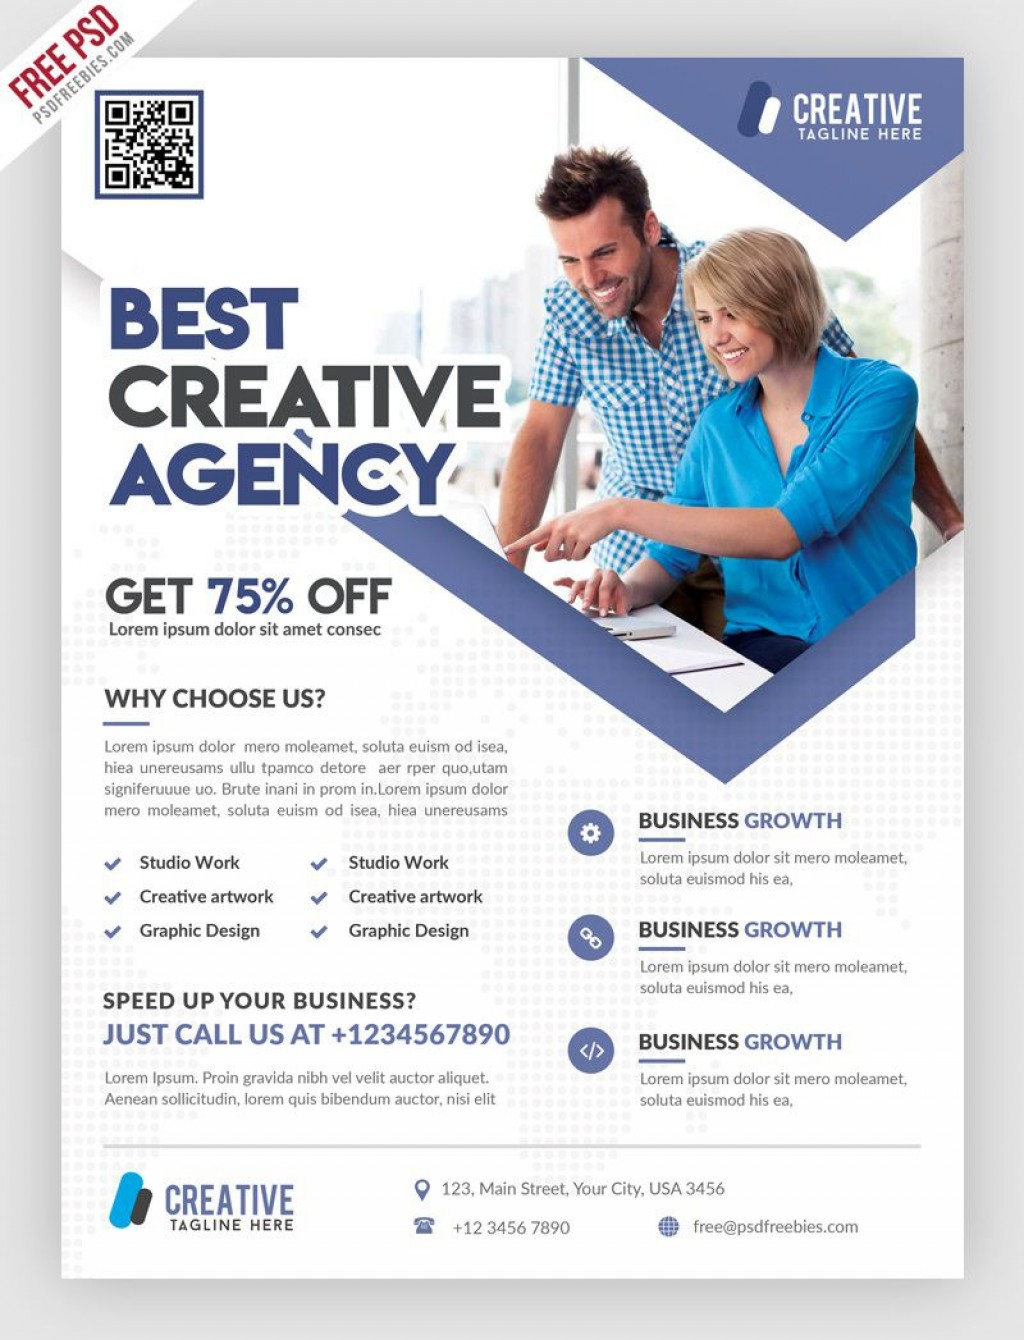 004 Staggering Free Psd Busines Brochure Template High Resolution  Templates Flyer 2018 CorporateLarge